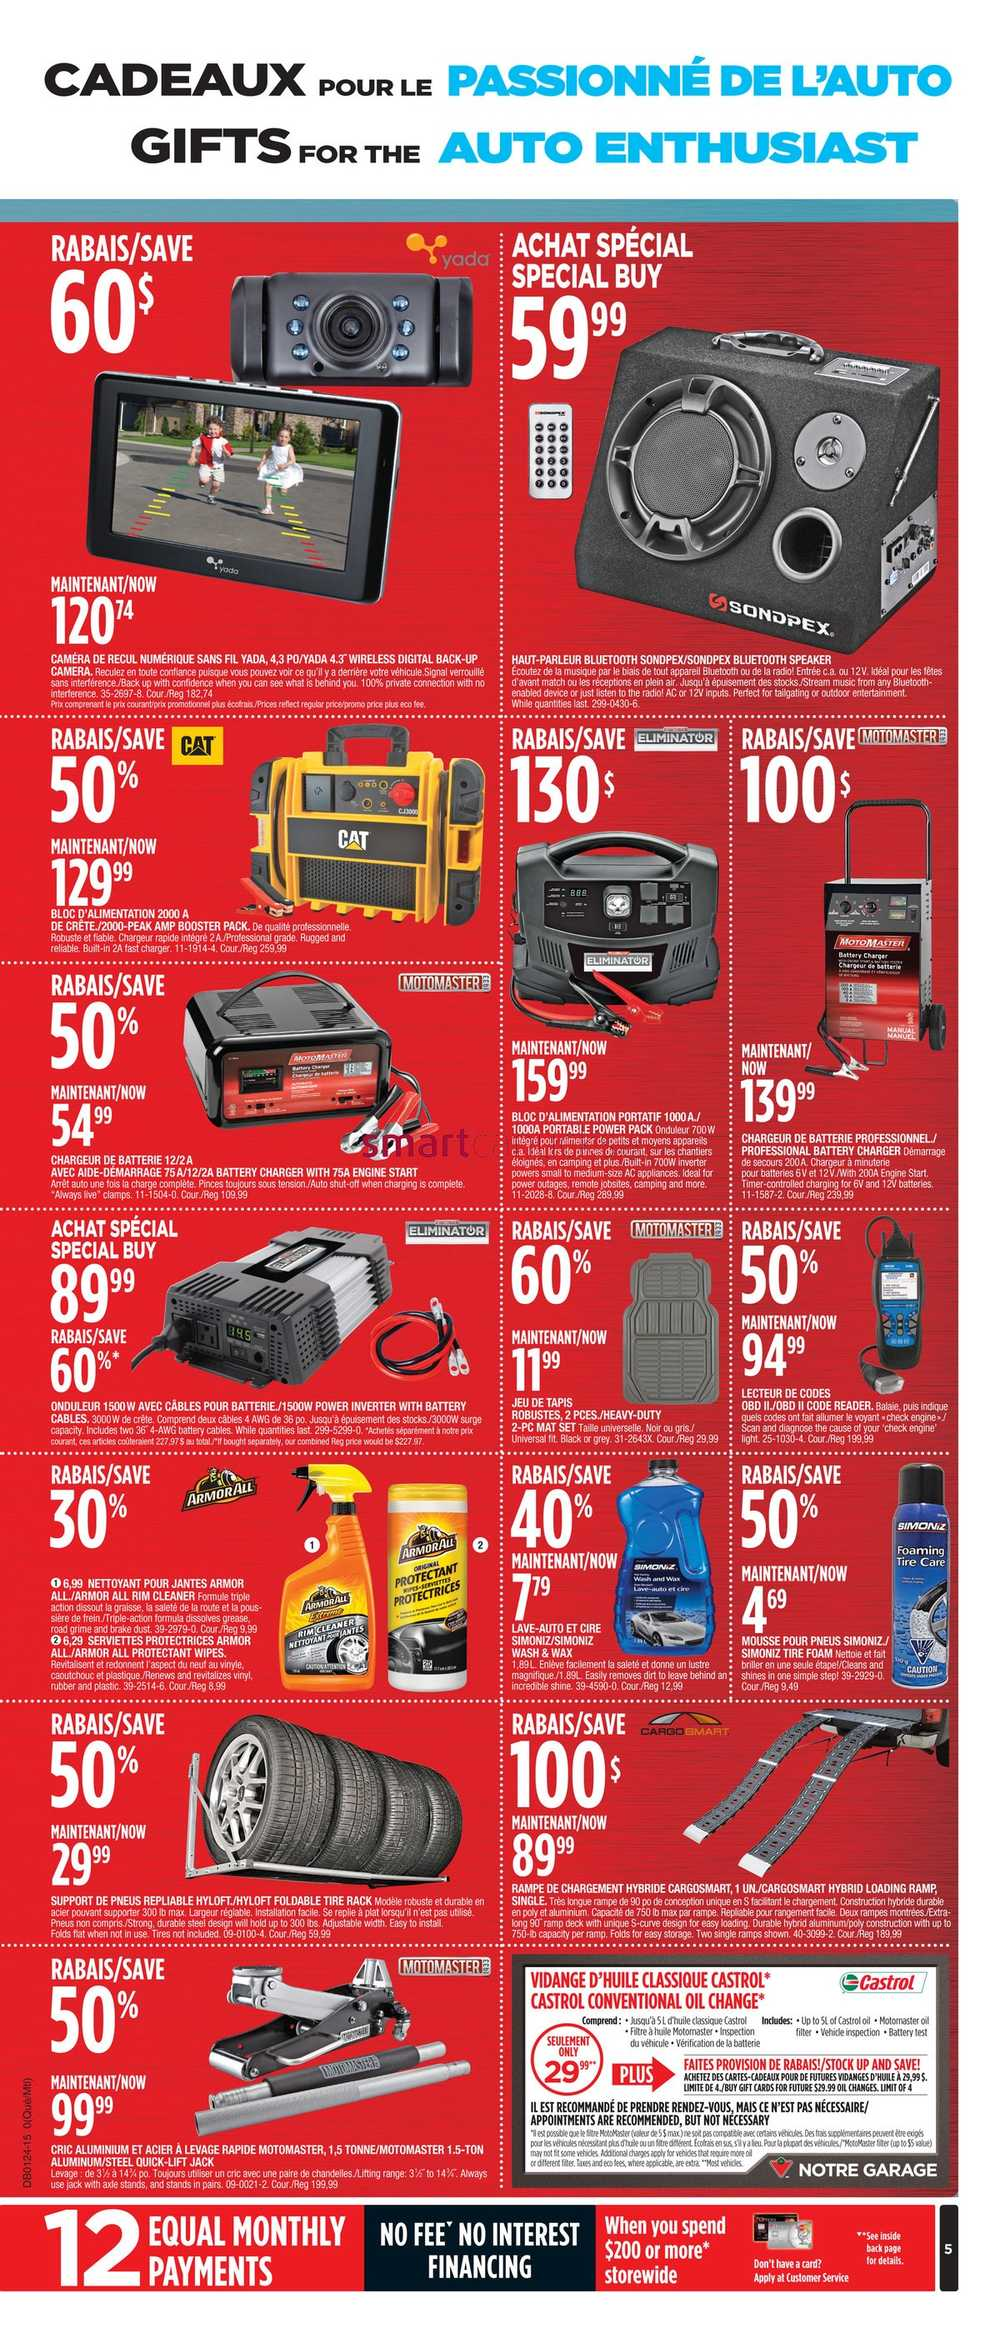 Canadian Tire Gifts for All Catalogue November 30 to December Starts: Fri, Nov 30, ; Ends: Thu, Dec 20,